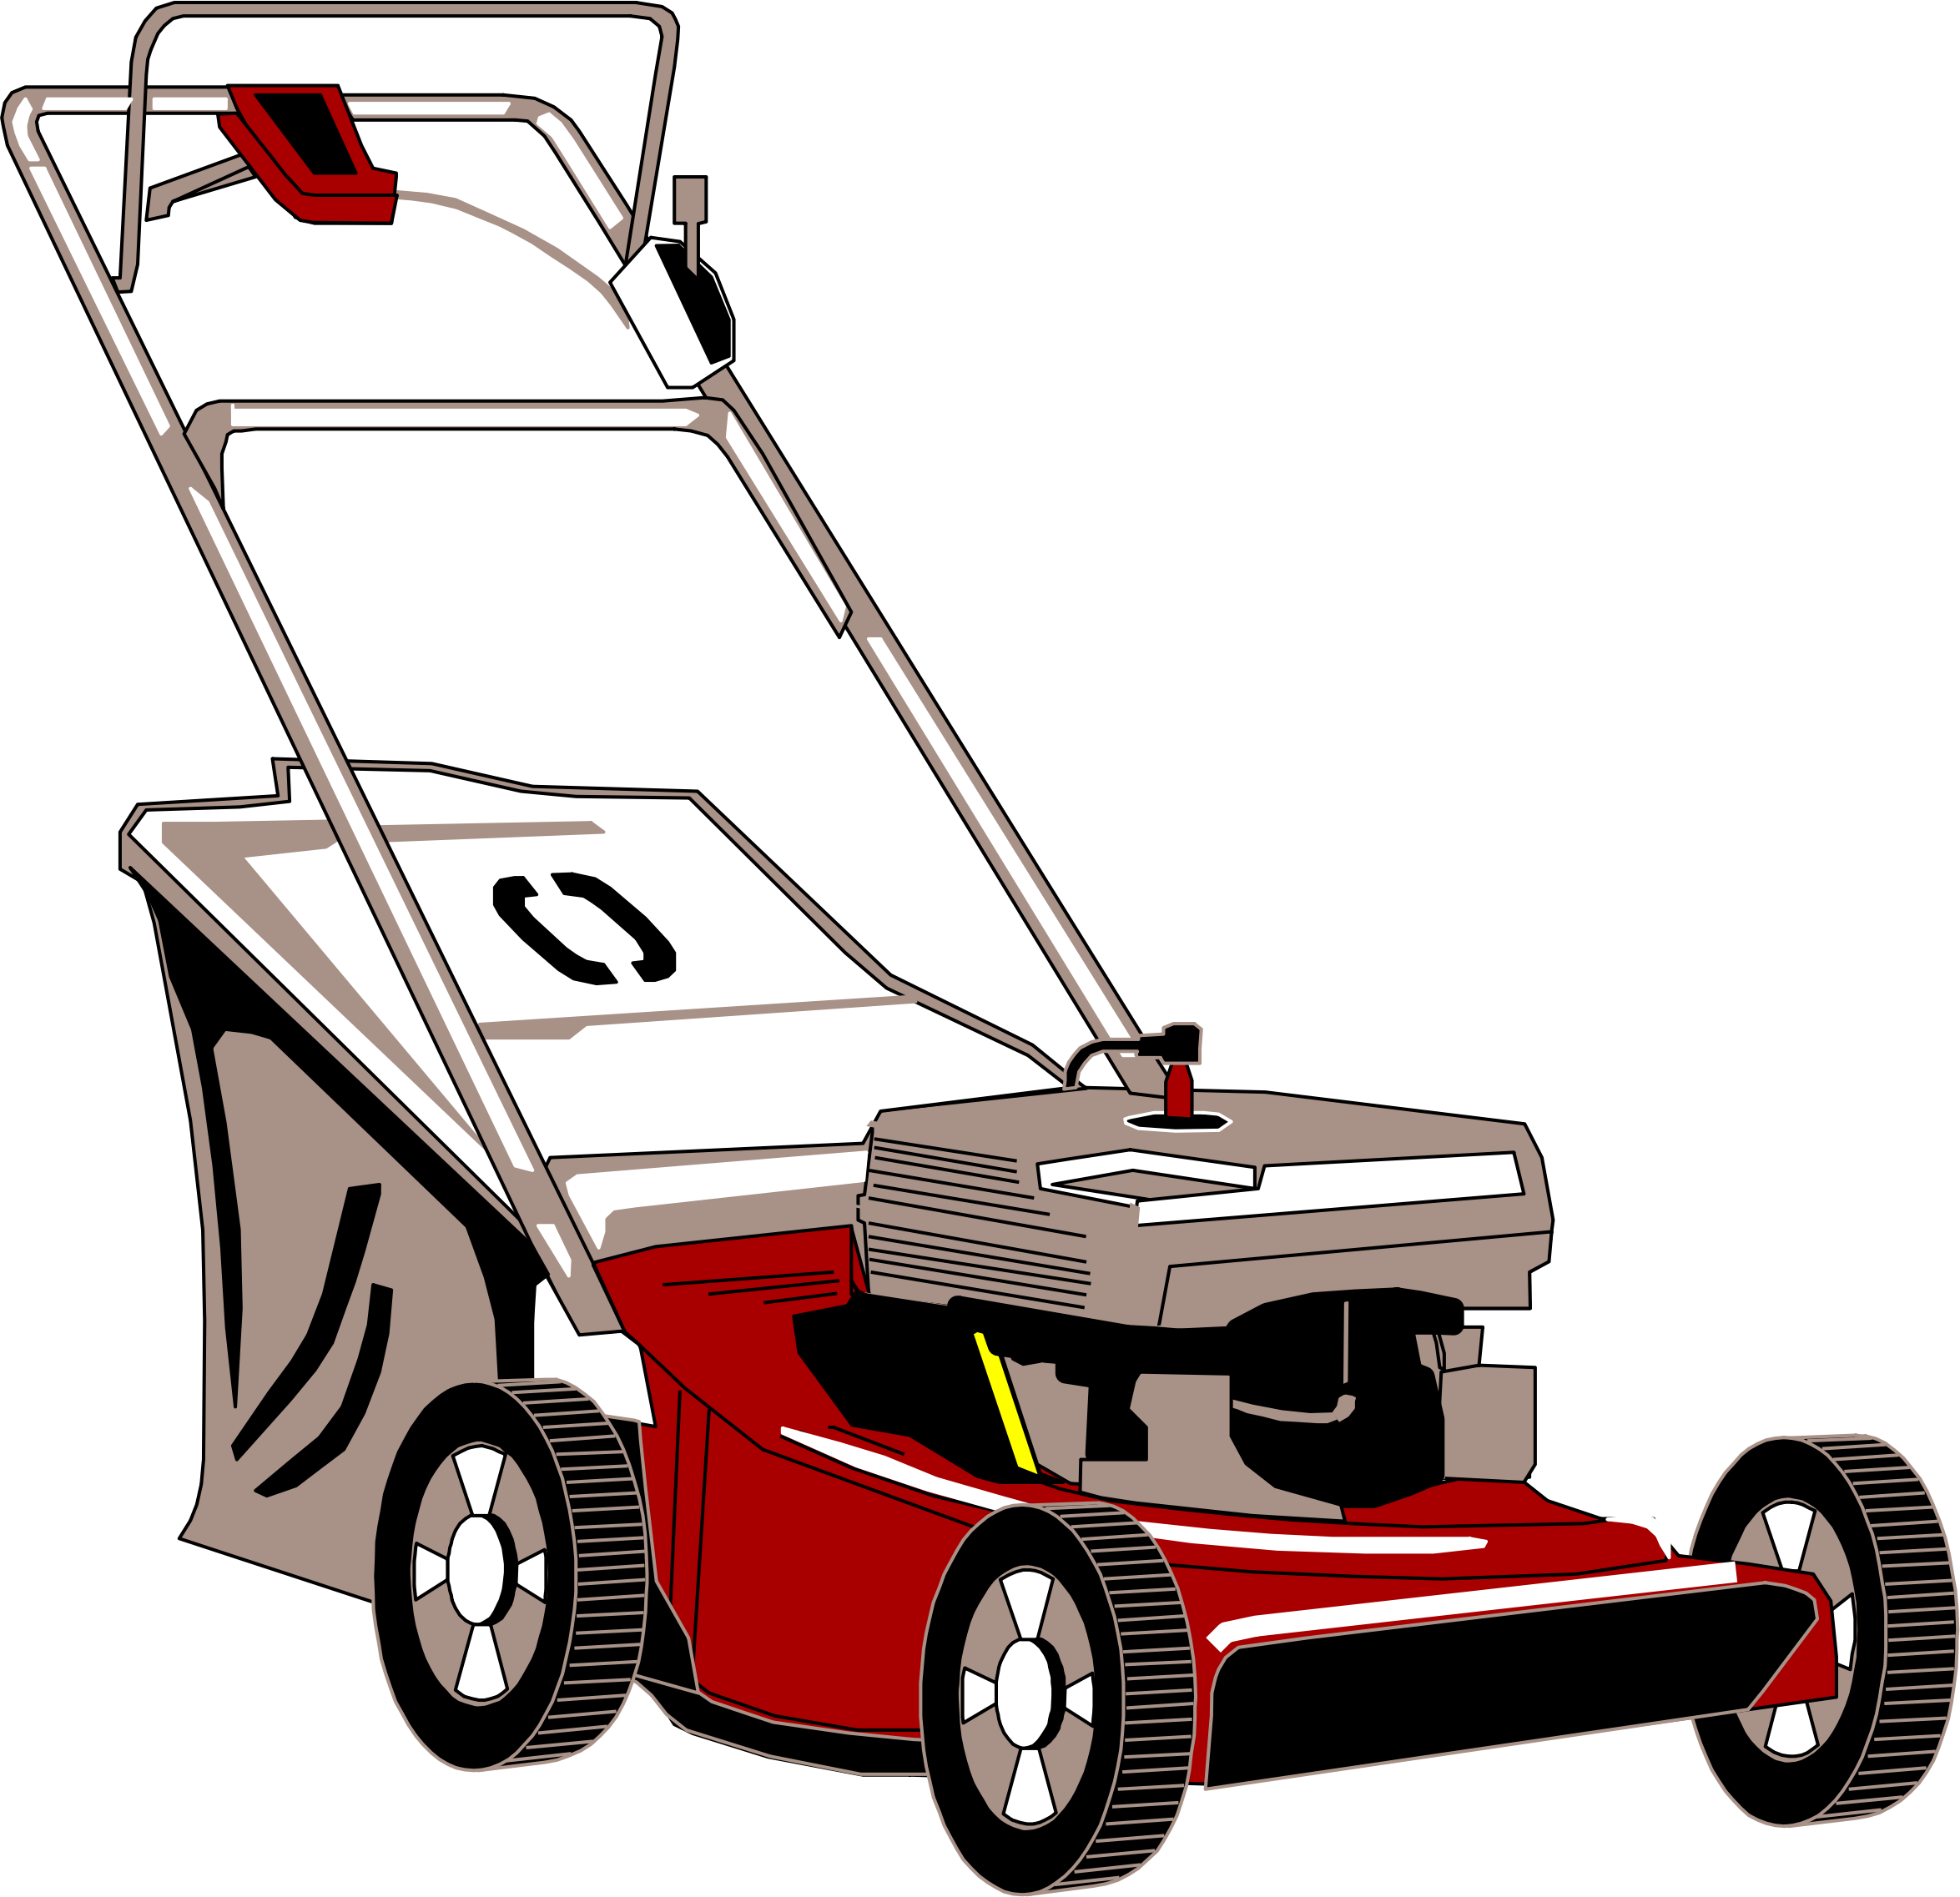 Mowing clipart small engine. Lawn mower vector